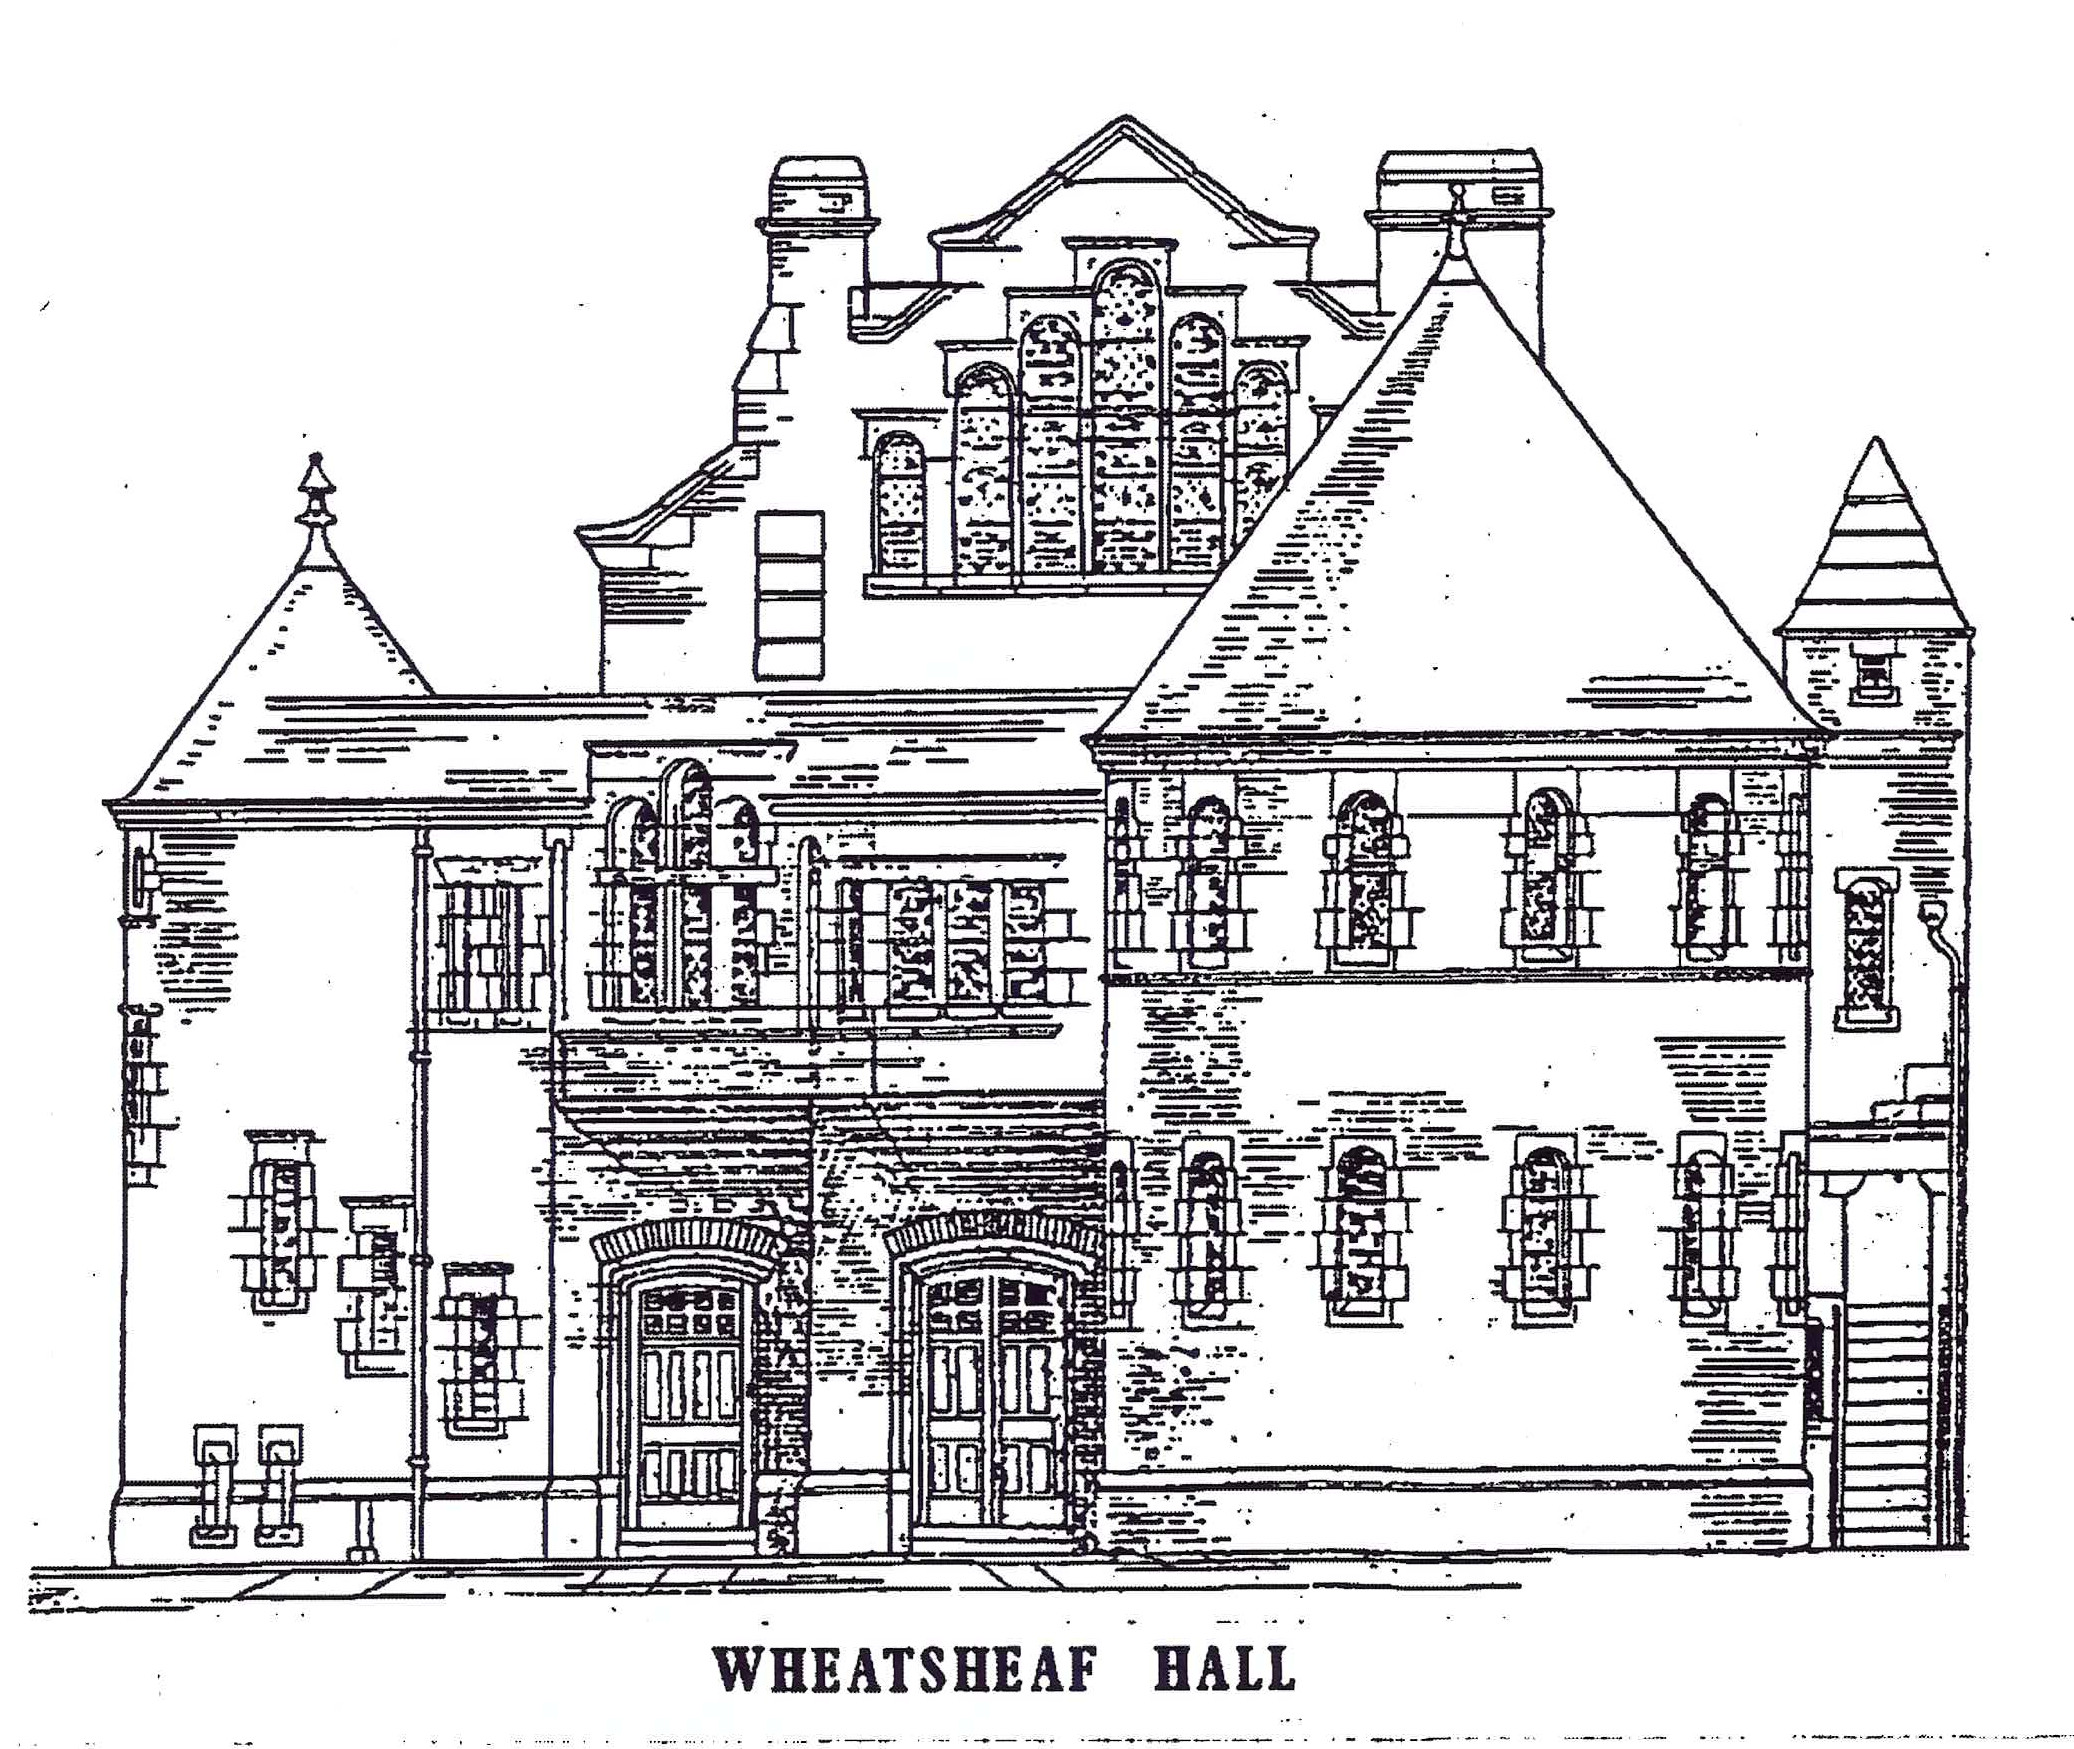 Wheatsheaf Community Hall